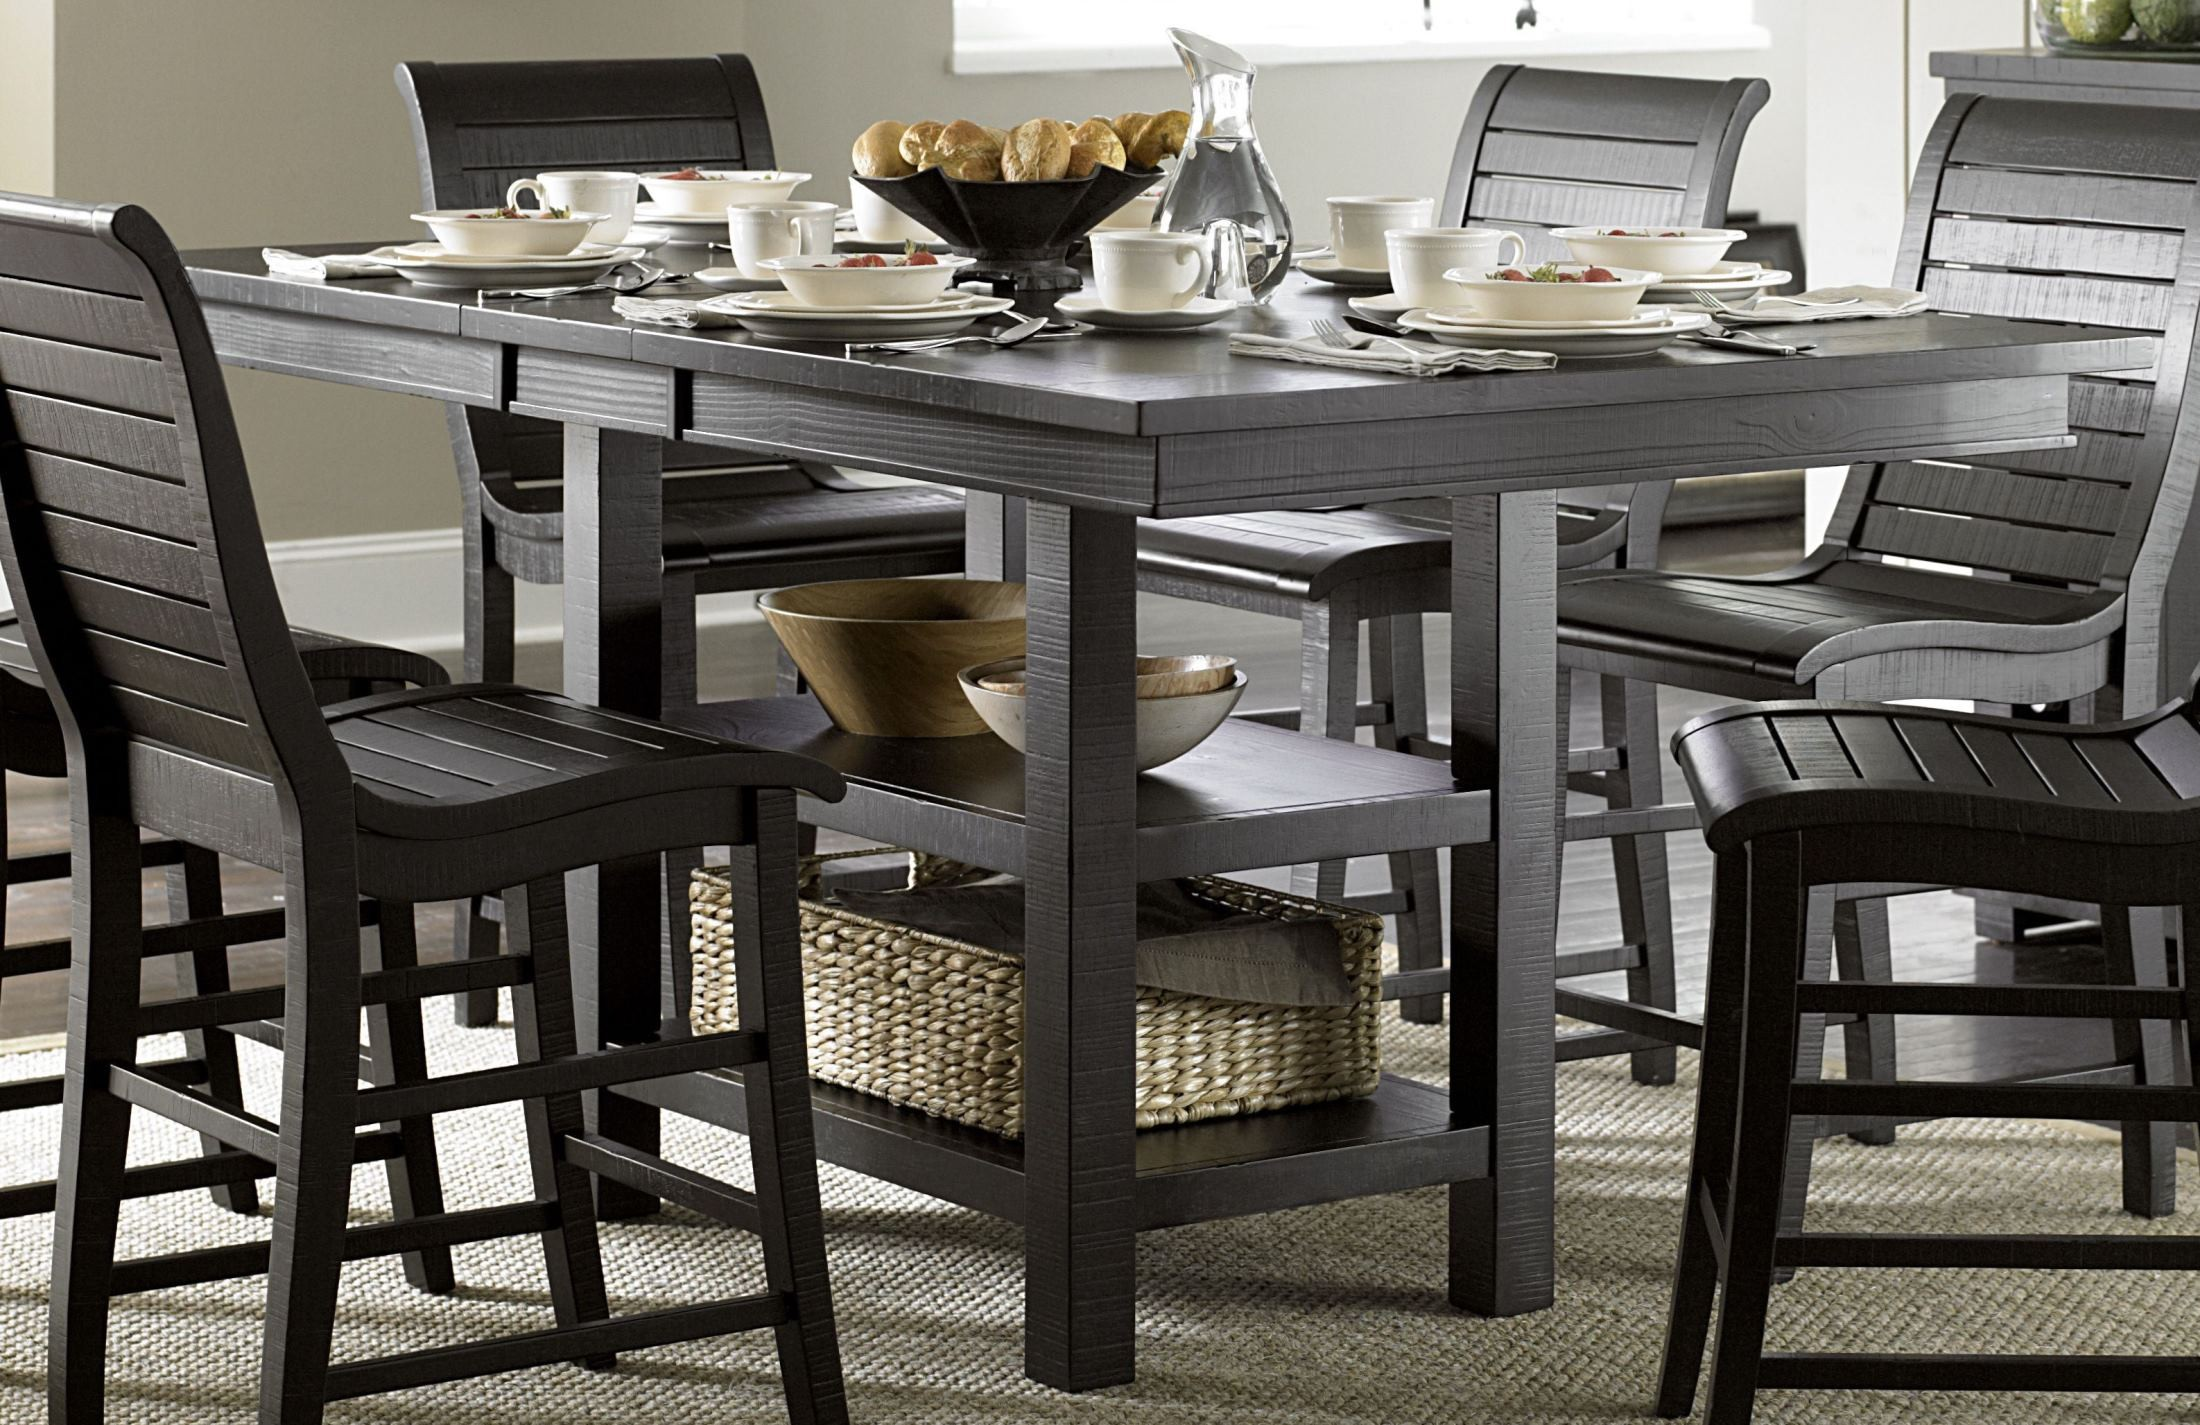 Counter Height Dining Tables: Willow Distressed Black Rectangular Counter Height Dining